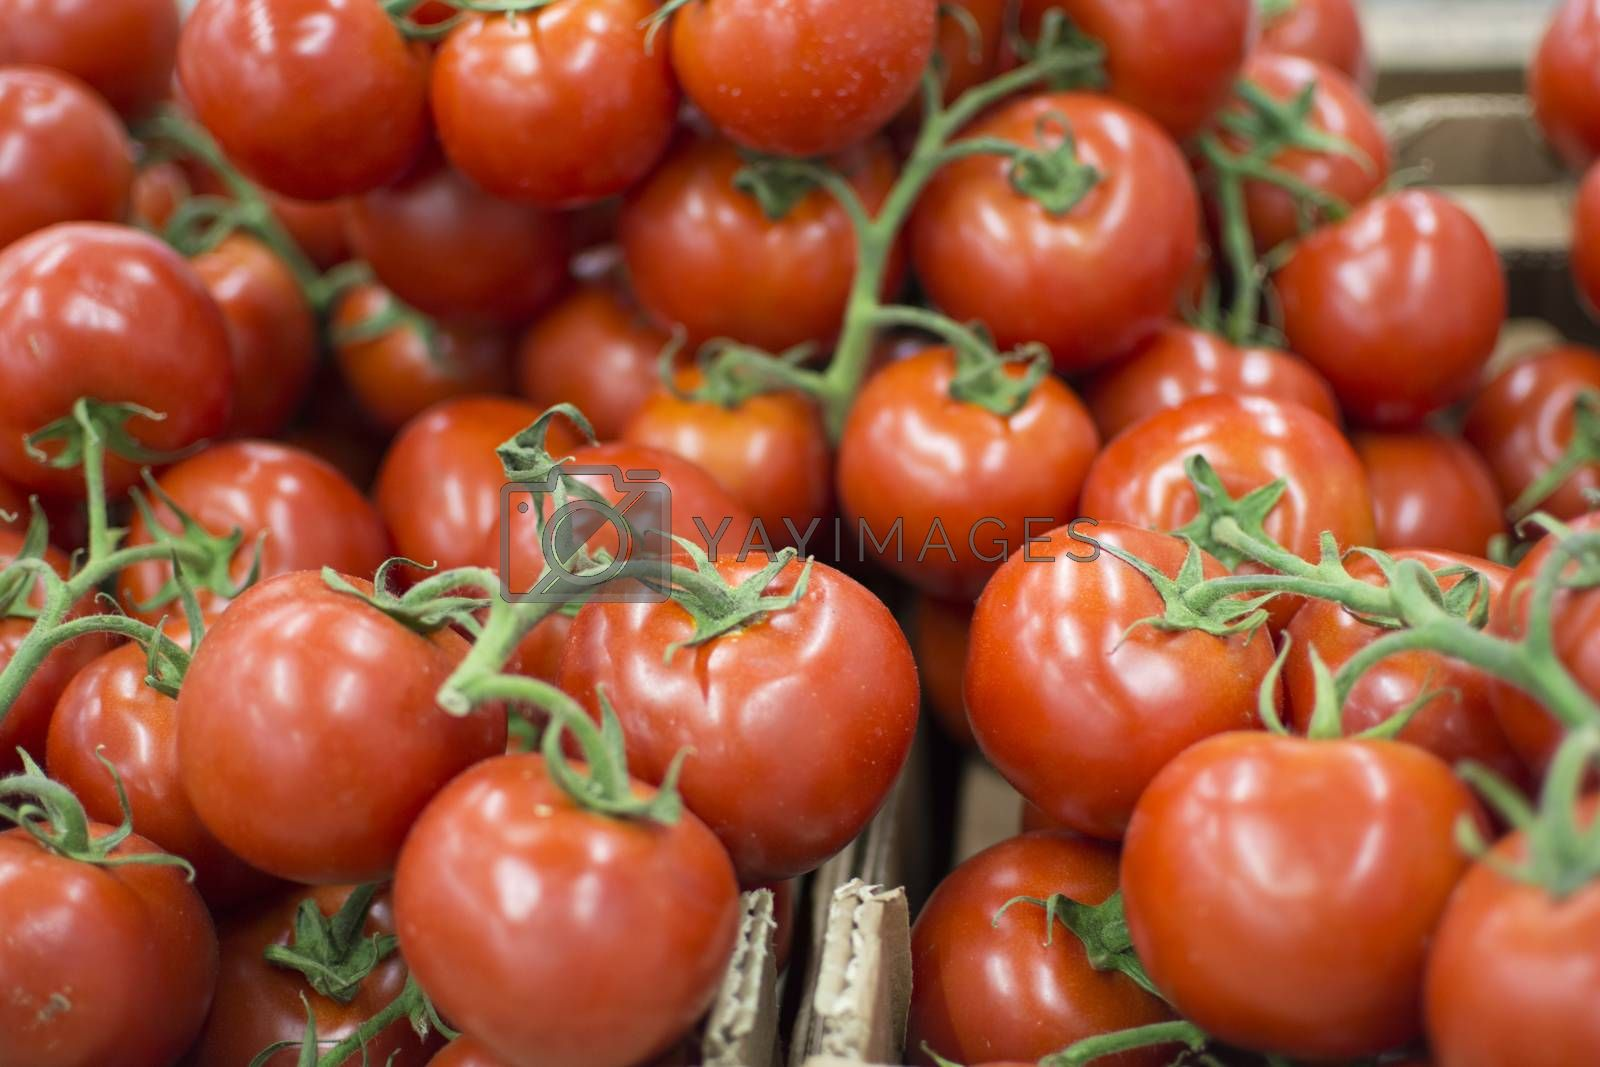 tomatoes by Nursel